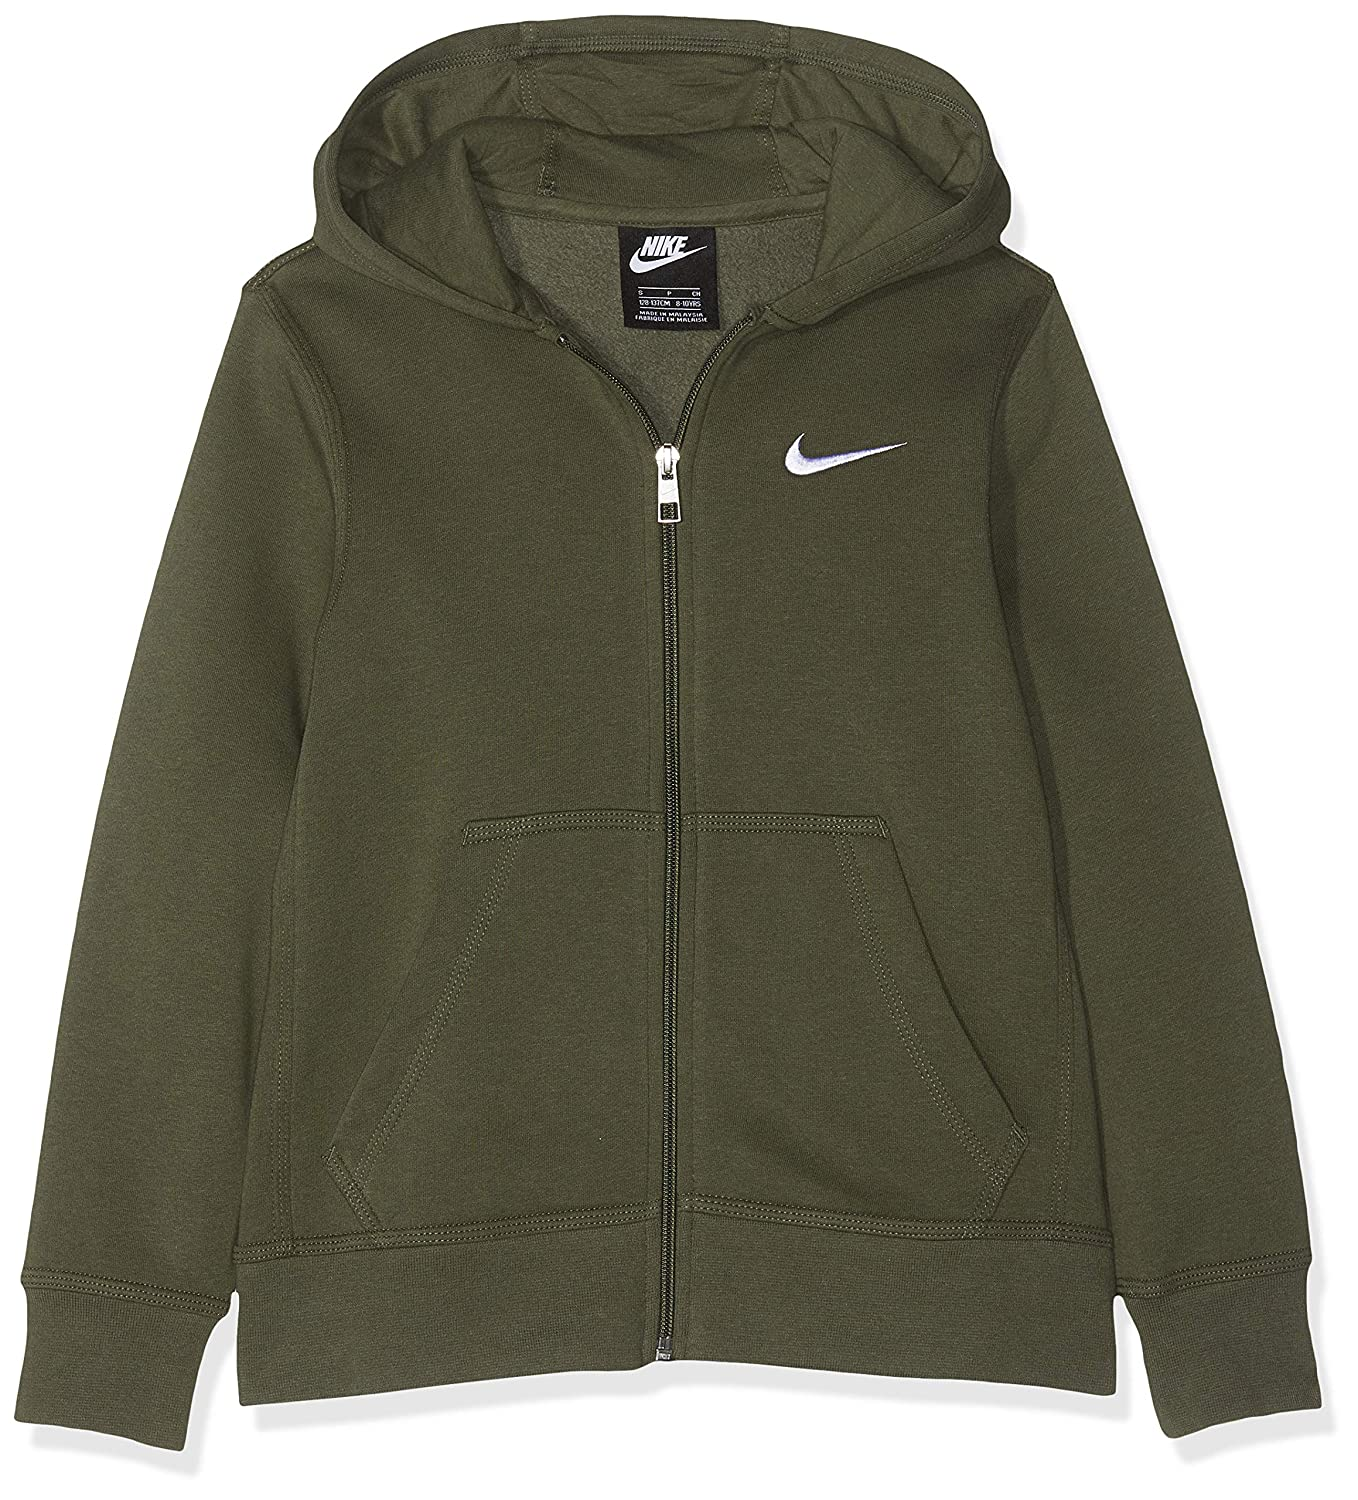 Amazon.com: NIKE Brushed Fleece Full-Zip (8y-15y) Older Boys Hoodie: Sports & Outdoors